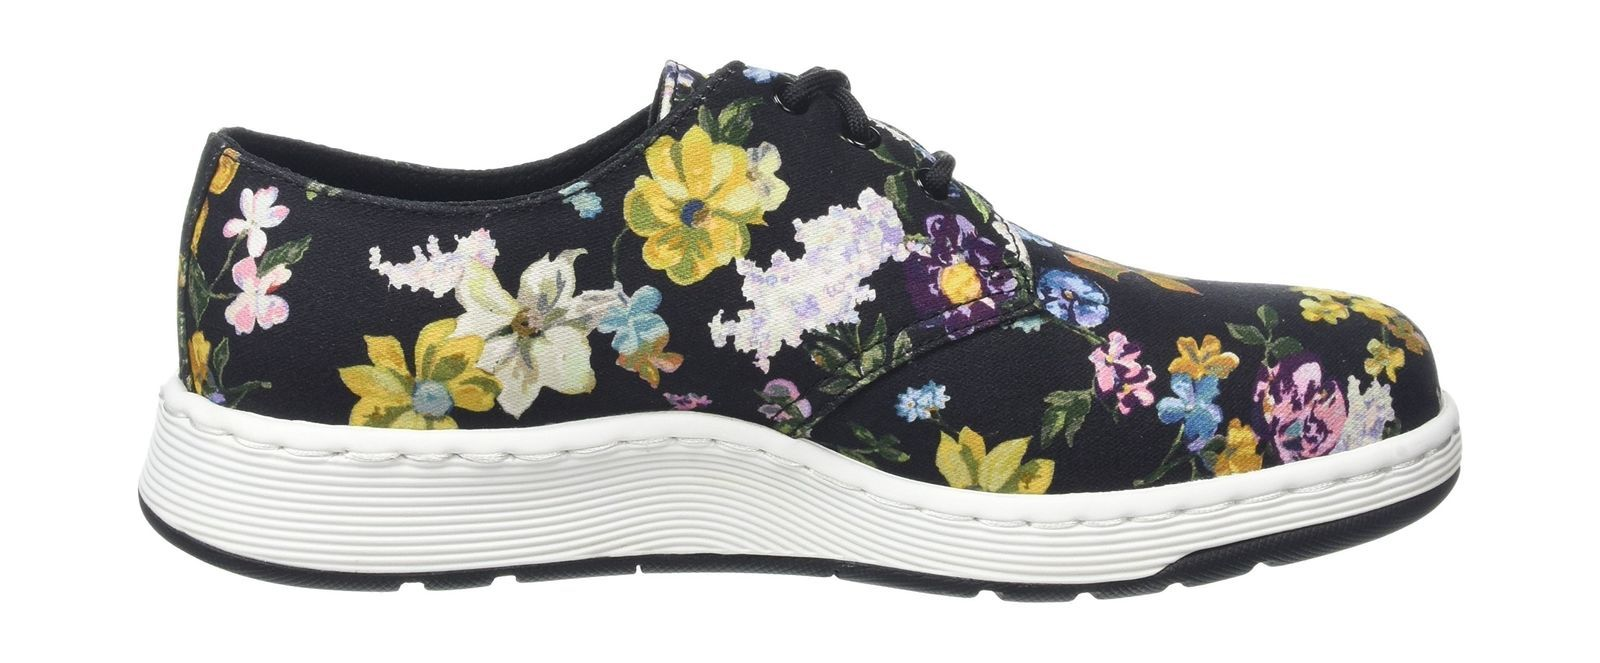 Womens Cavendish Df Black Darcy Floral Fine Can Trainers Dr. Martens 4fea3